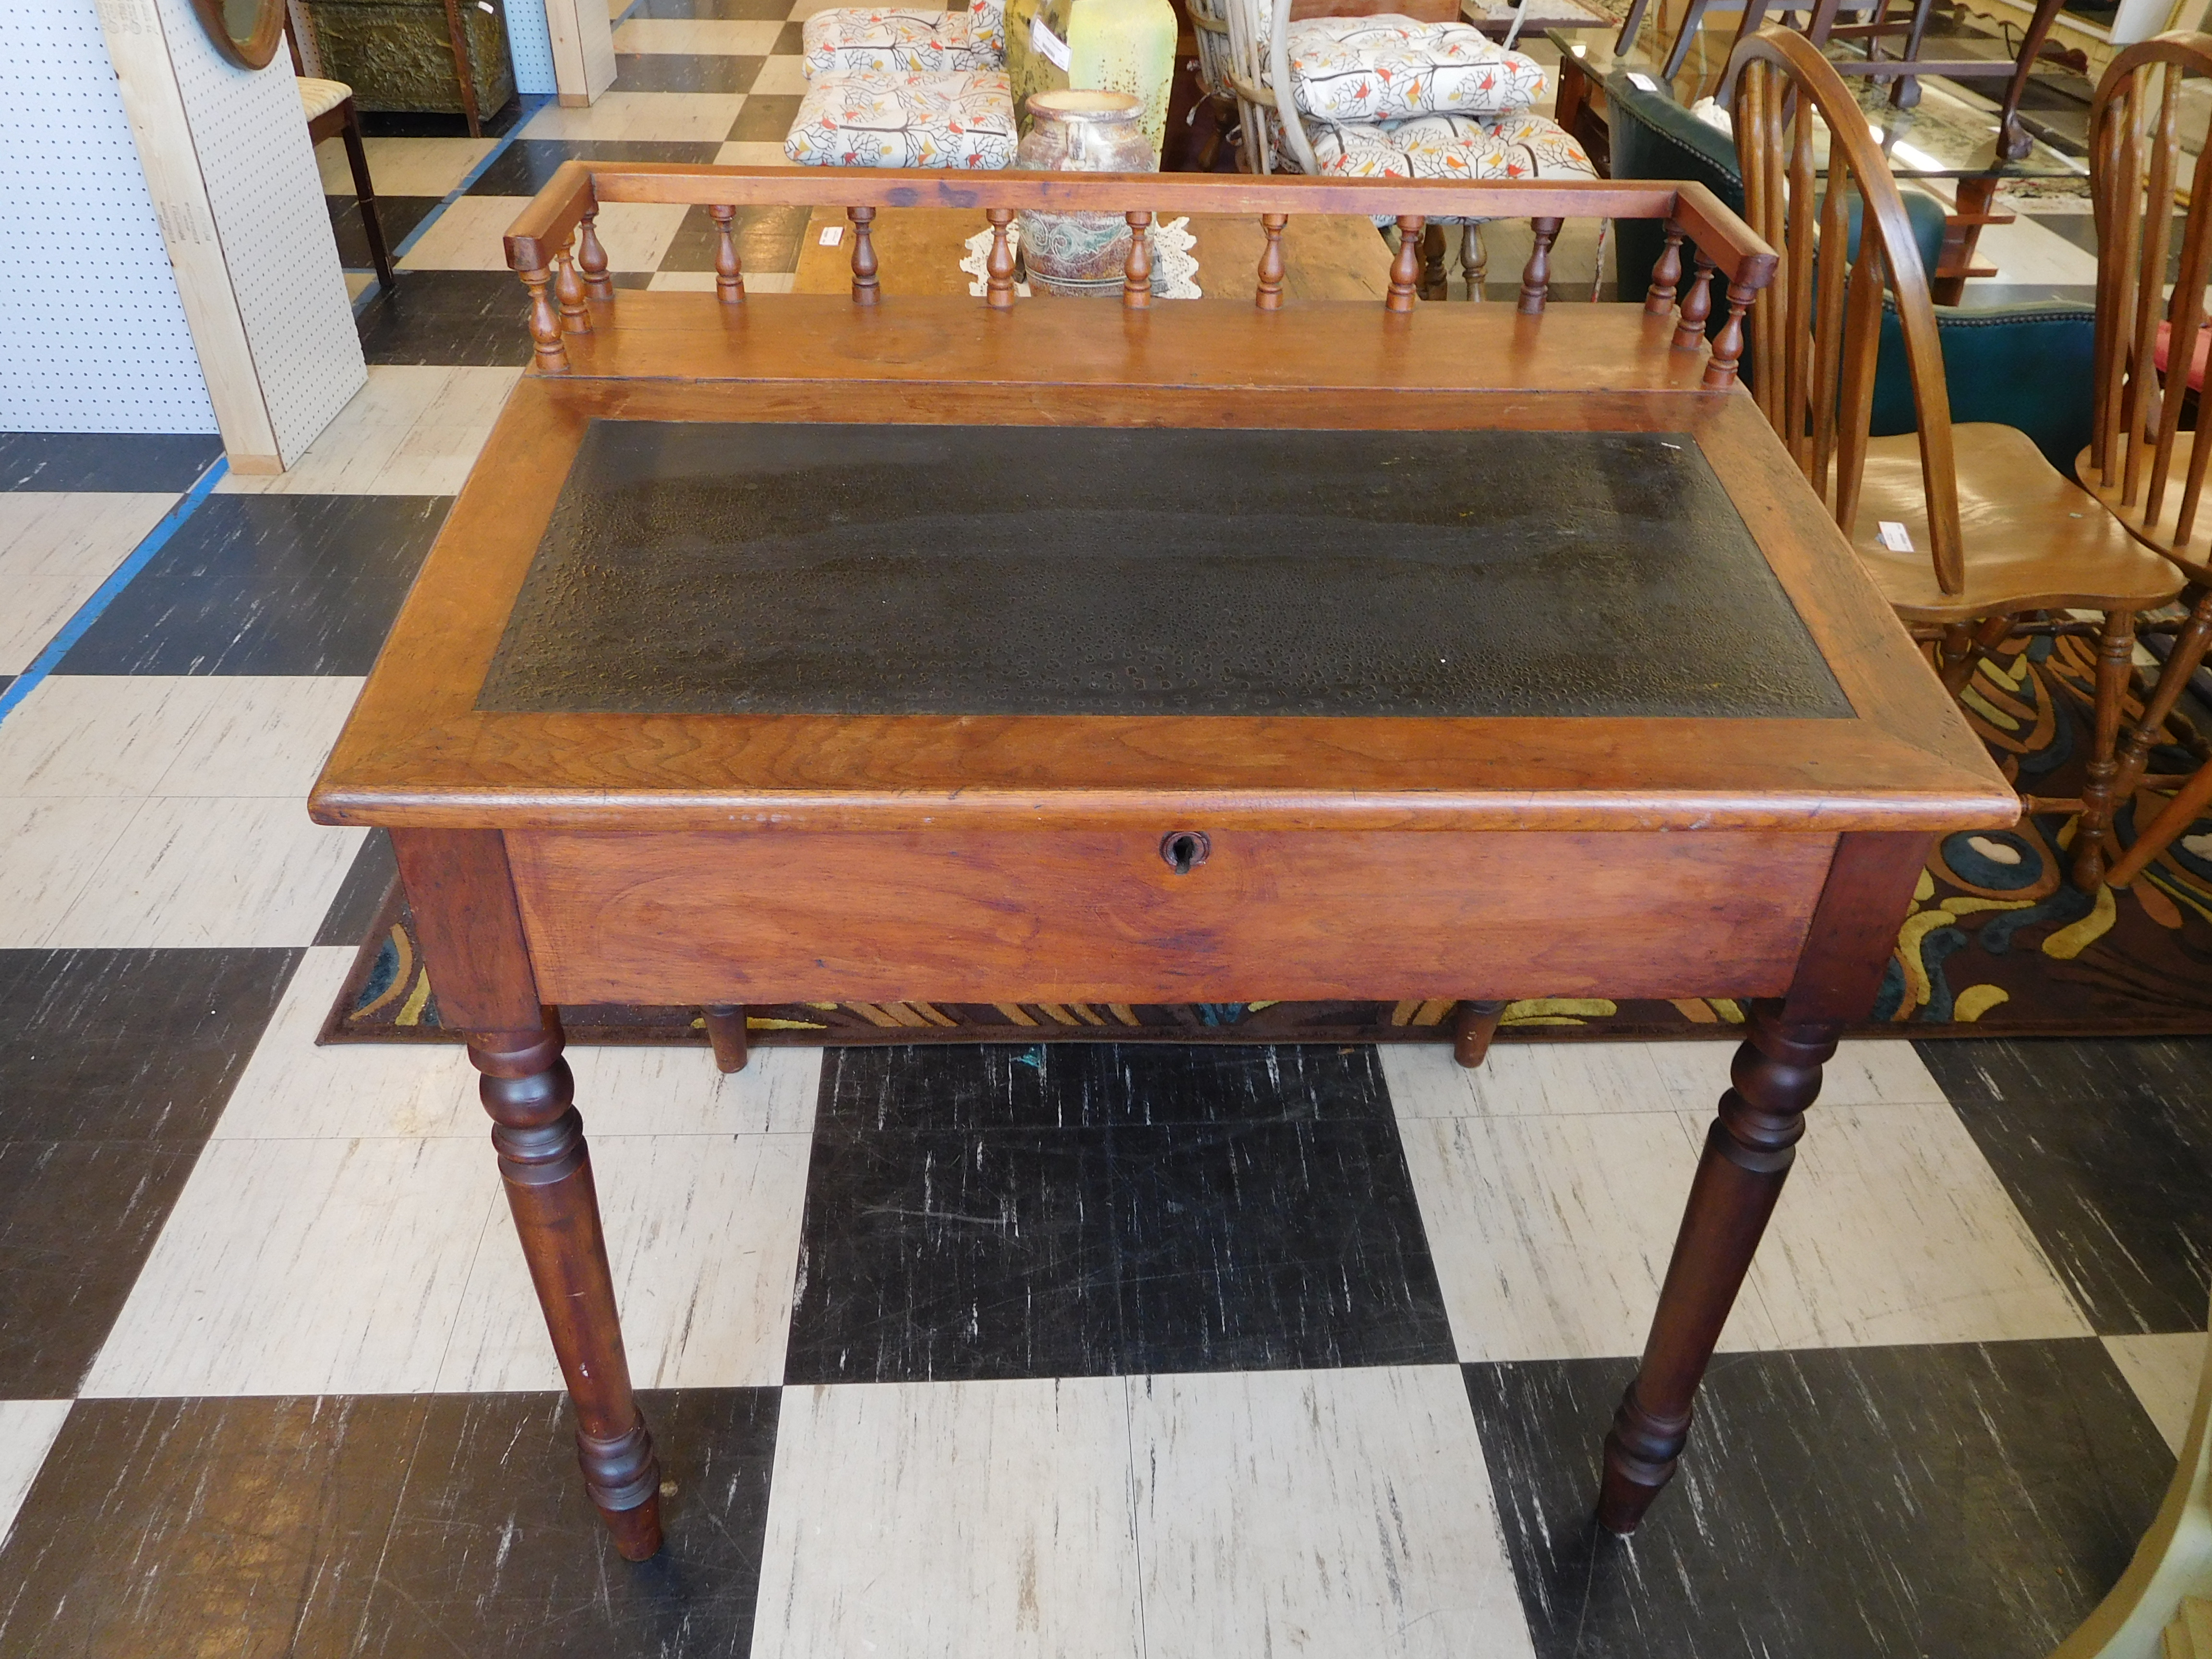 Antique Cherry Hinged Top Desk with Inside Storage